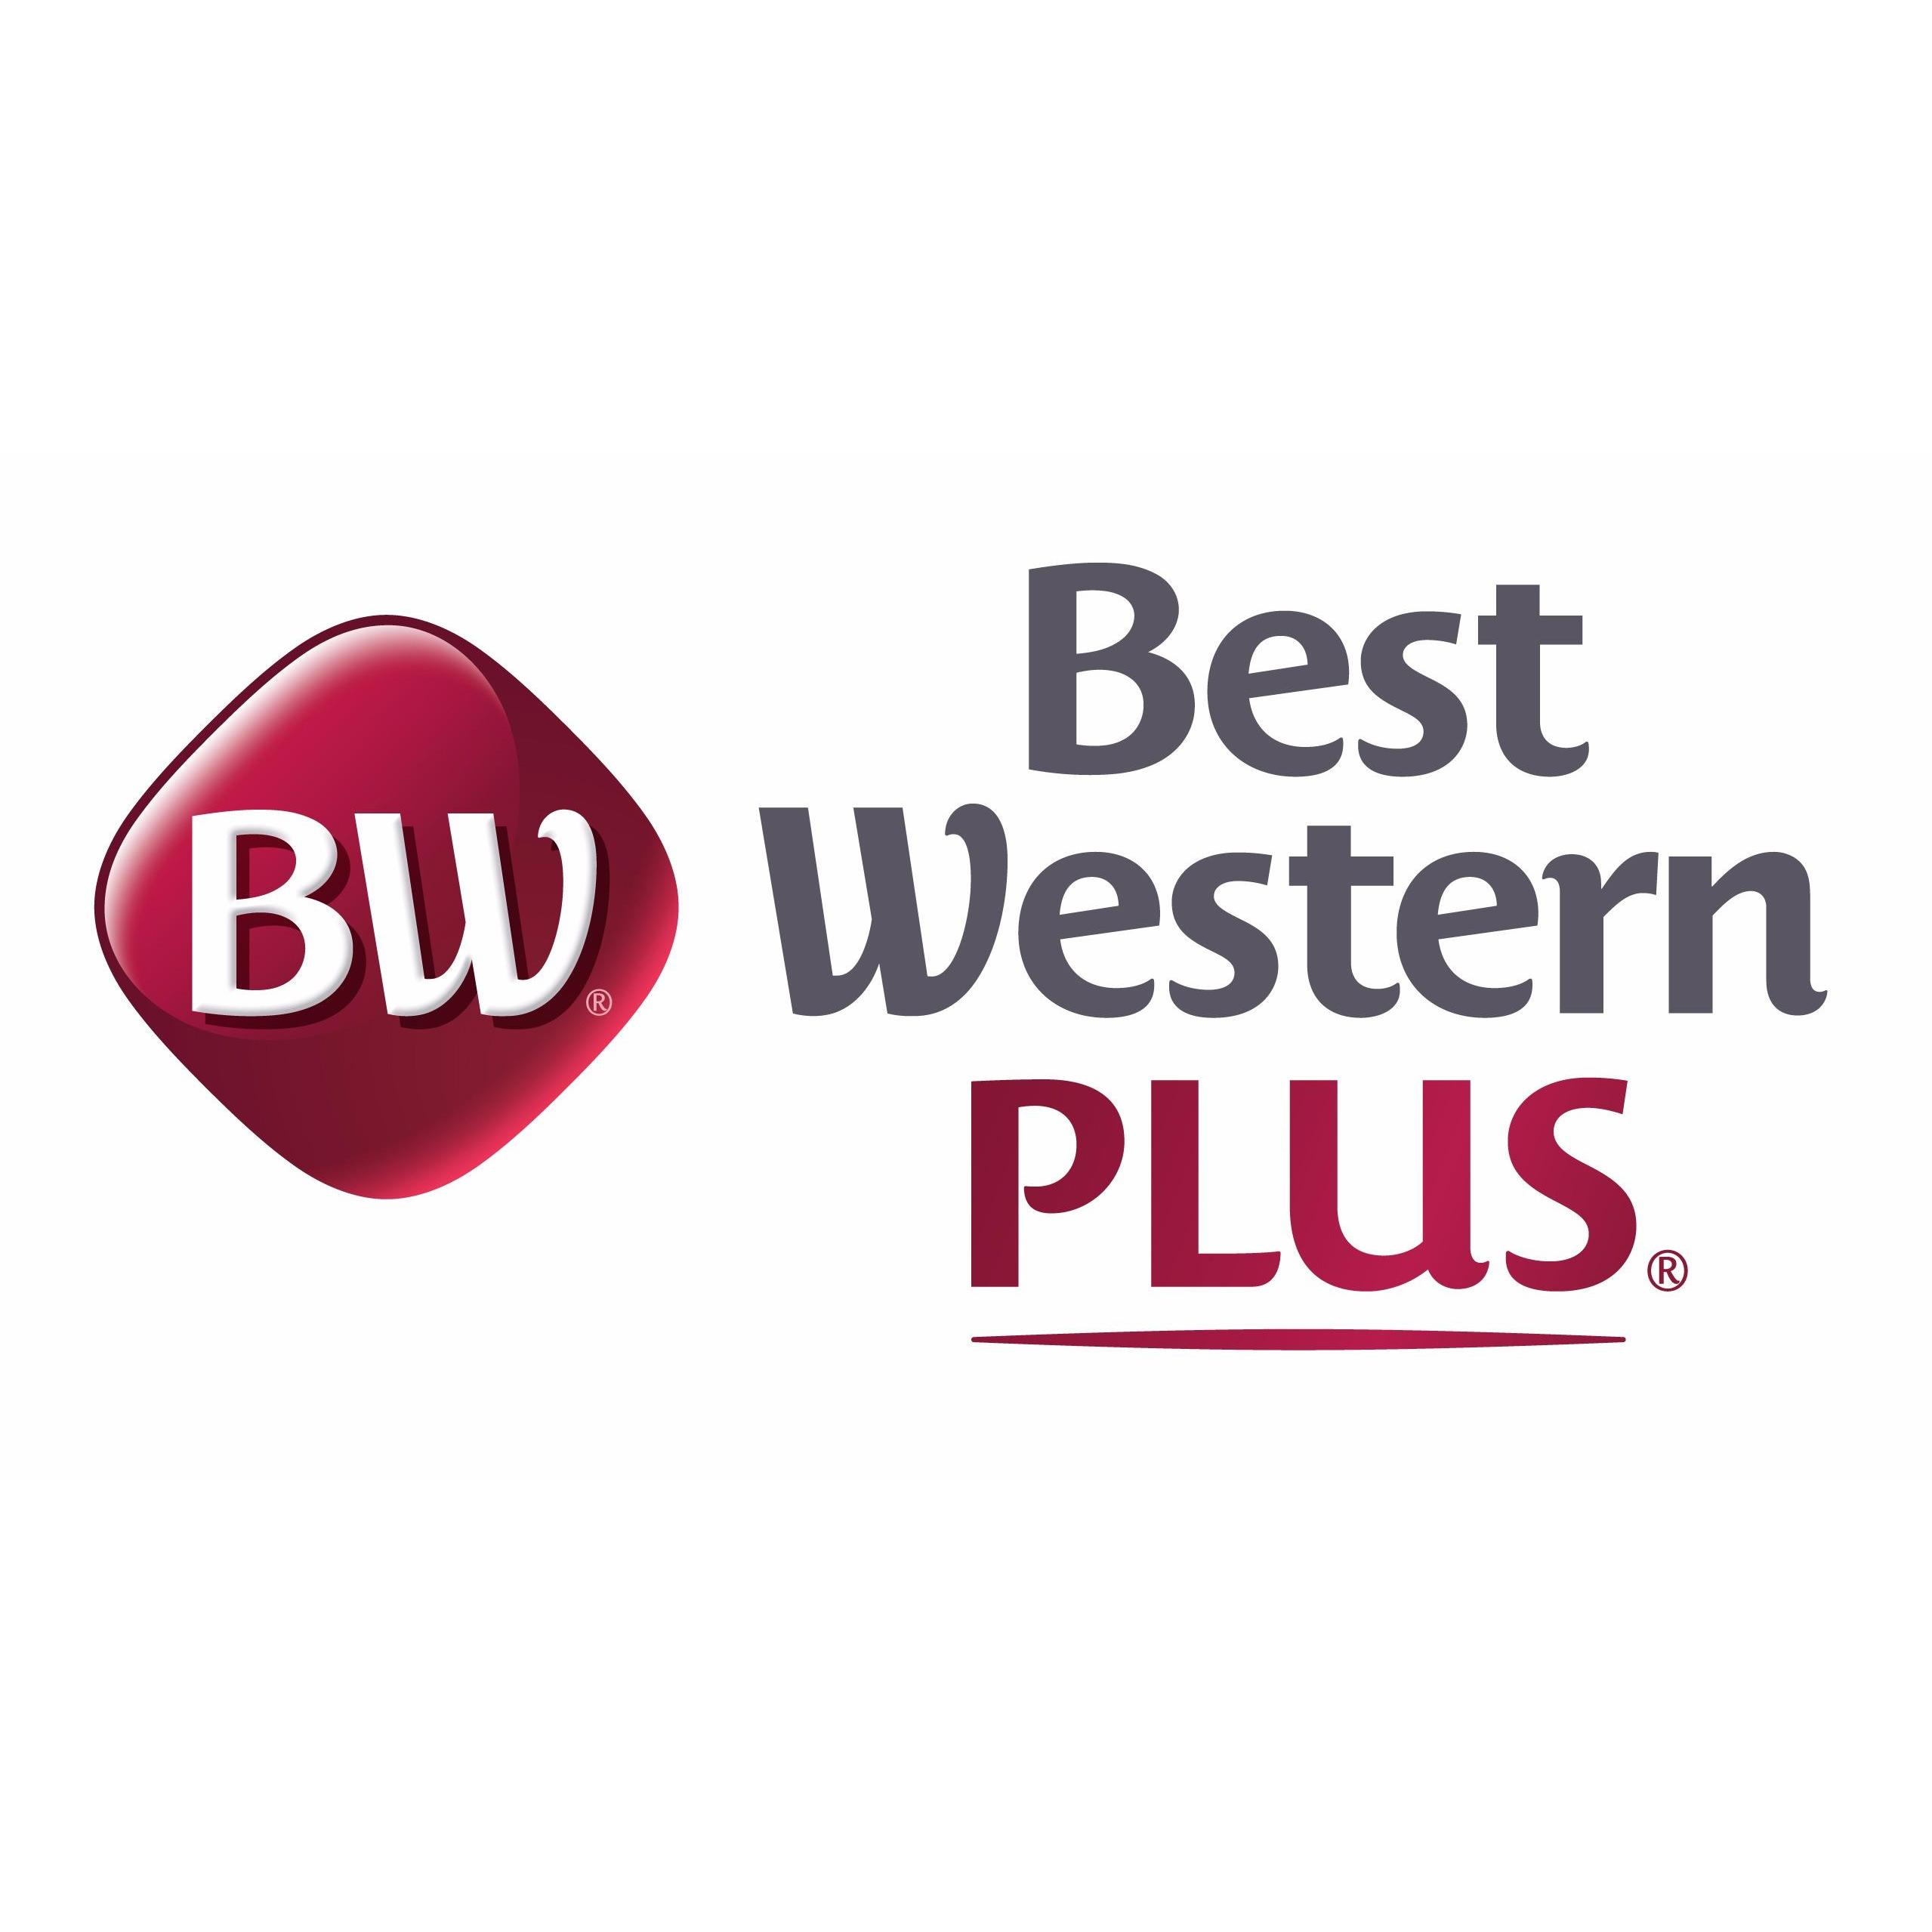 Best Western Plus Howe Inn - Howe, IN 46746 - (260)562-2880 | ShowMeLocal.com